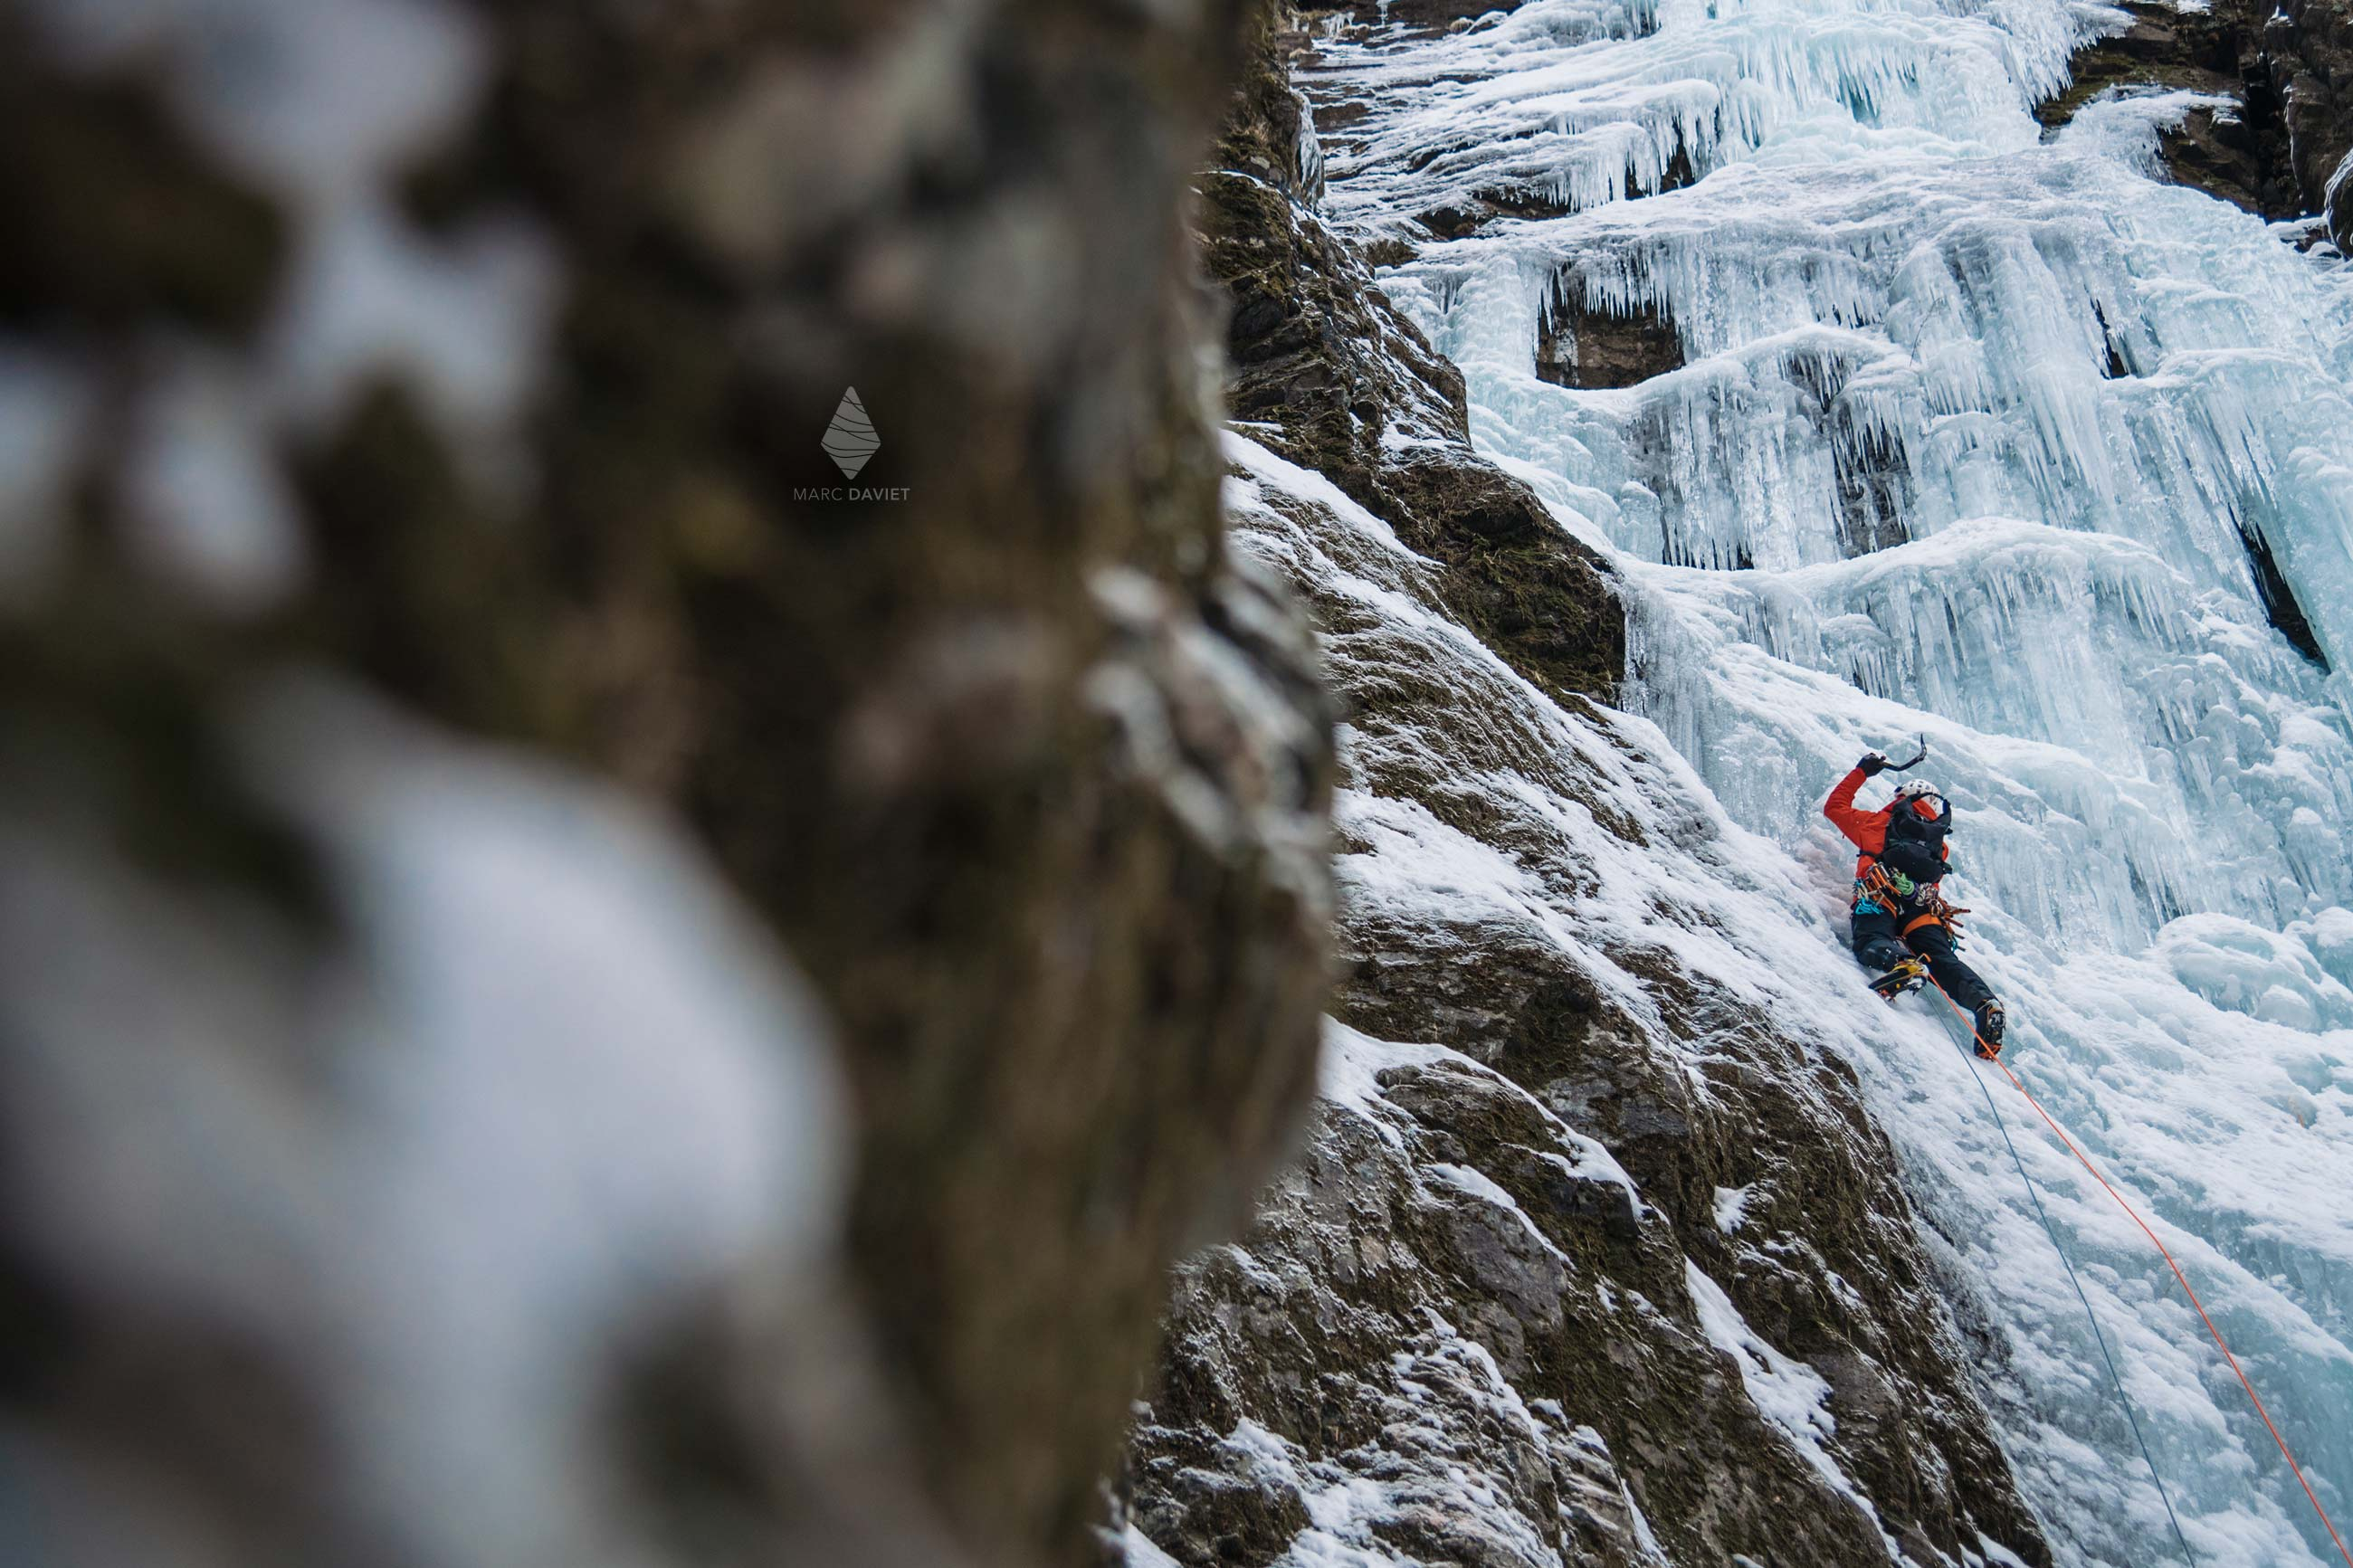 Ice fall climbing in Norway fjords